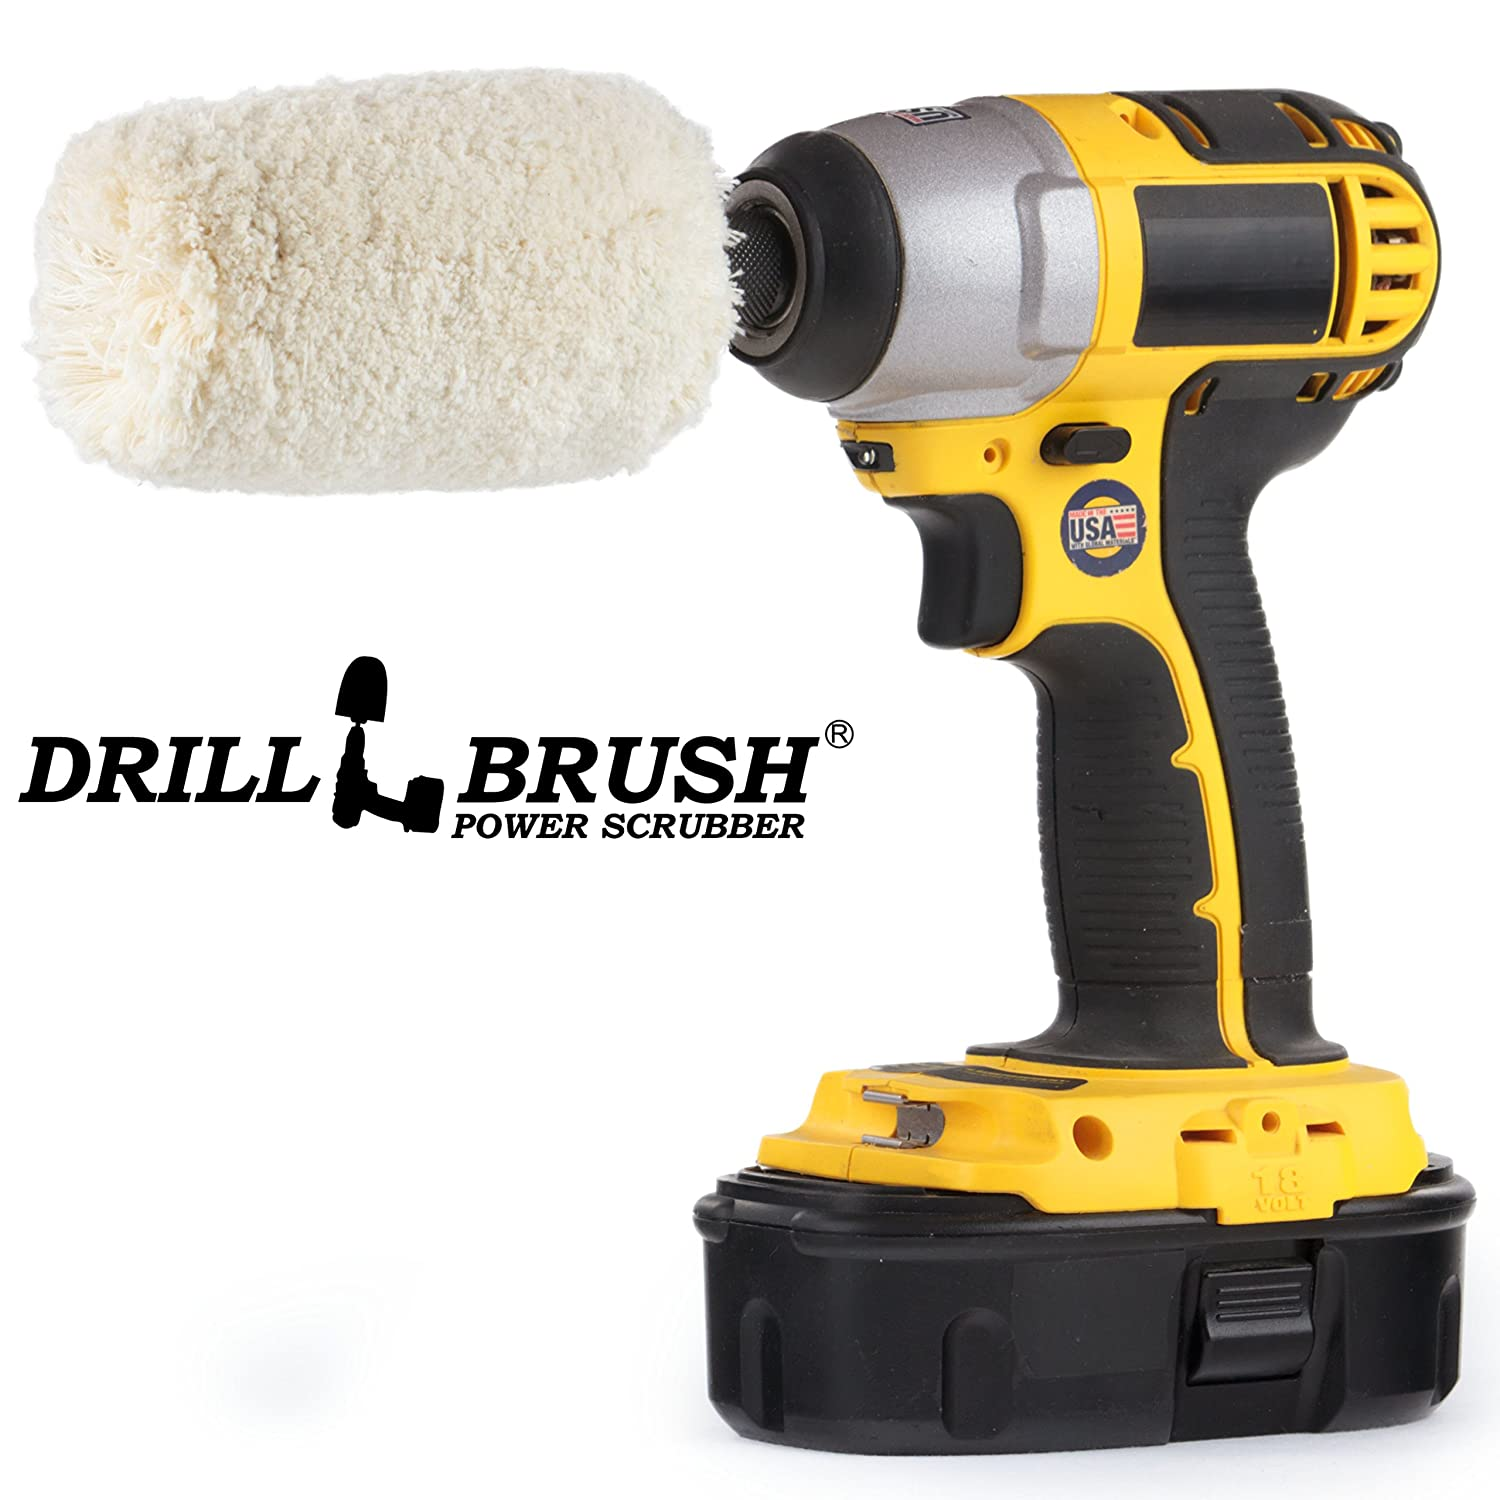 Drill Brush - Soft - Cotton - Cone - Buffer Polisher - Car Buffer - Buffing Wheel - Polisher - Metal - Chrome - Stainless Steel - Aluminum - Titanium - Glass - Wood - Buffer - Wheels - Rims - Engine Drillbrush COT-WH-LBUFER